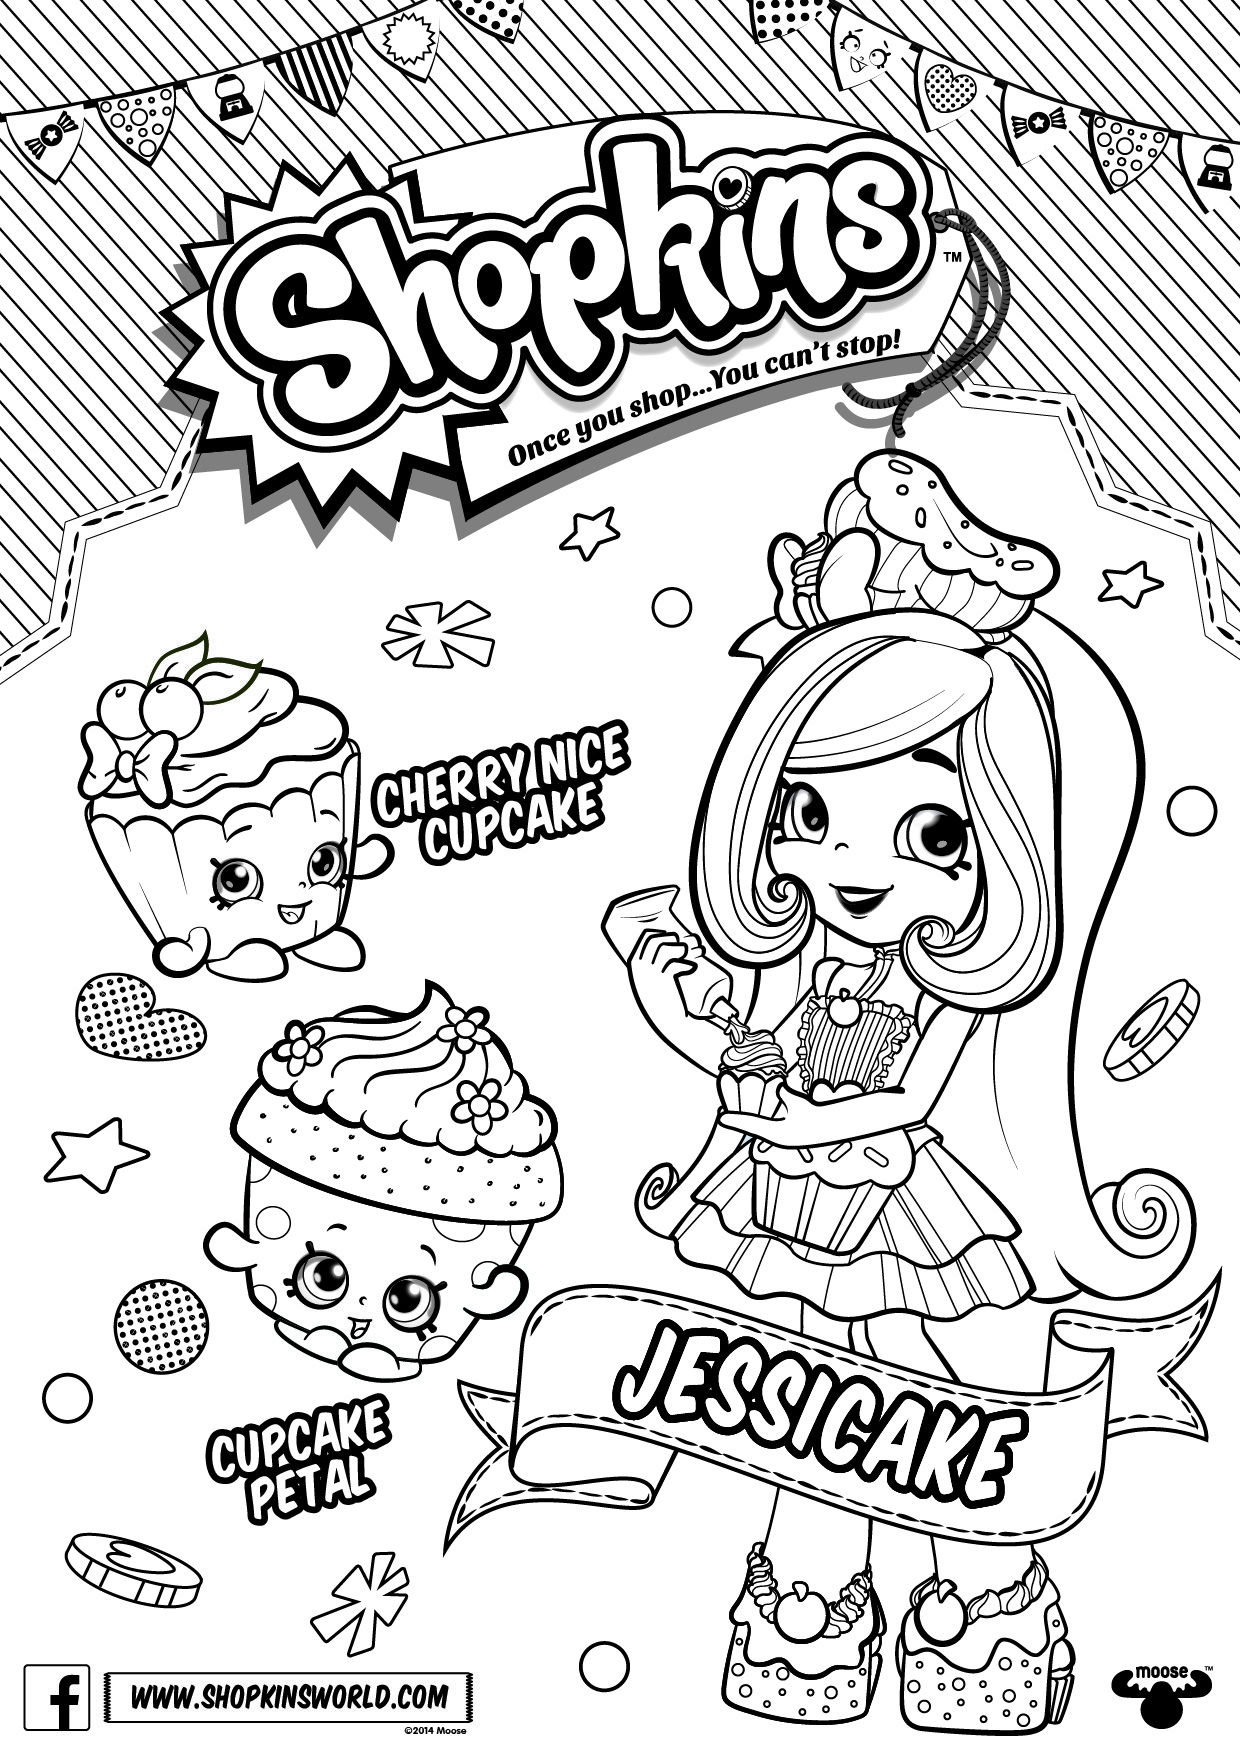 Jessicake Shoppies Shopkins Coloring Pages Shopkins Coloring Pages Free Printable Shopkins Colouring Pages Shopkins Colouring Book